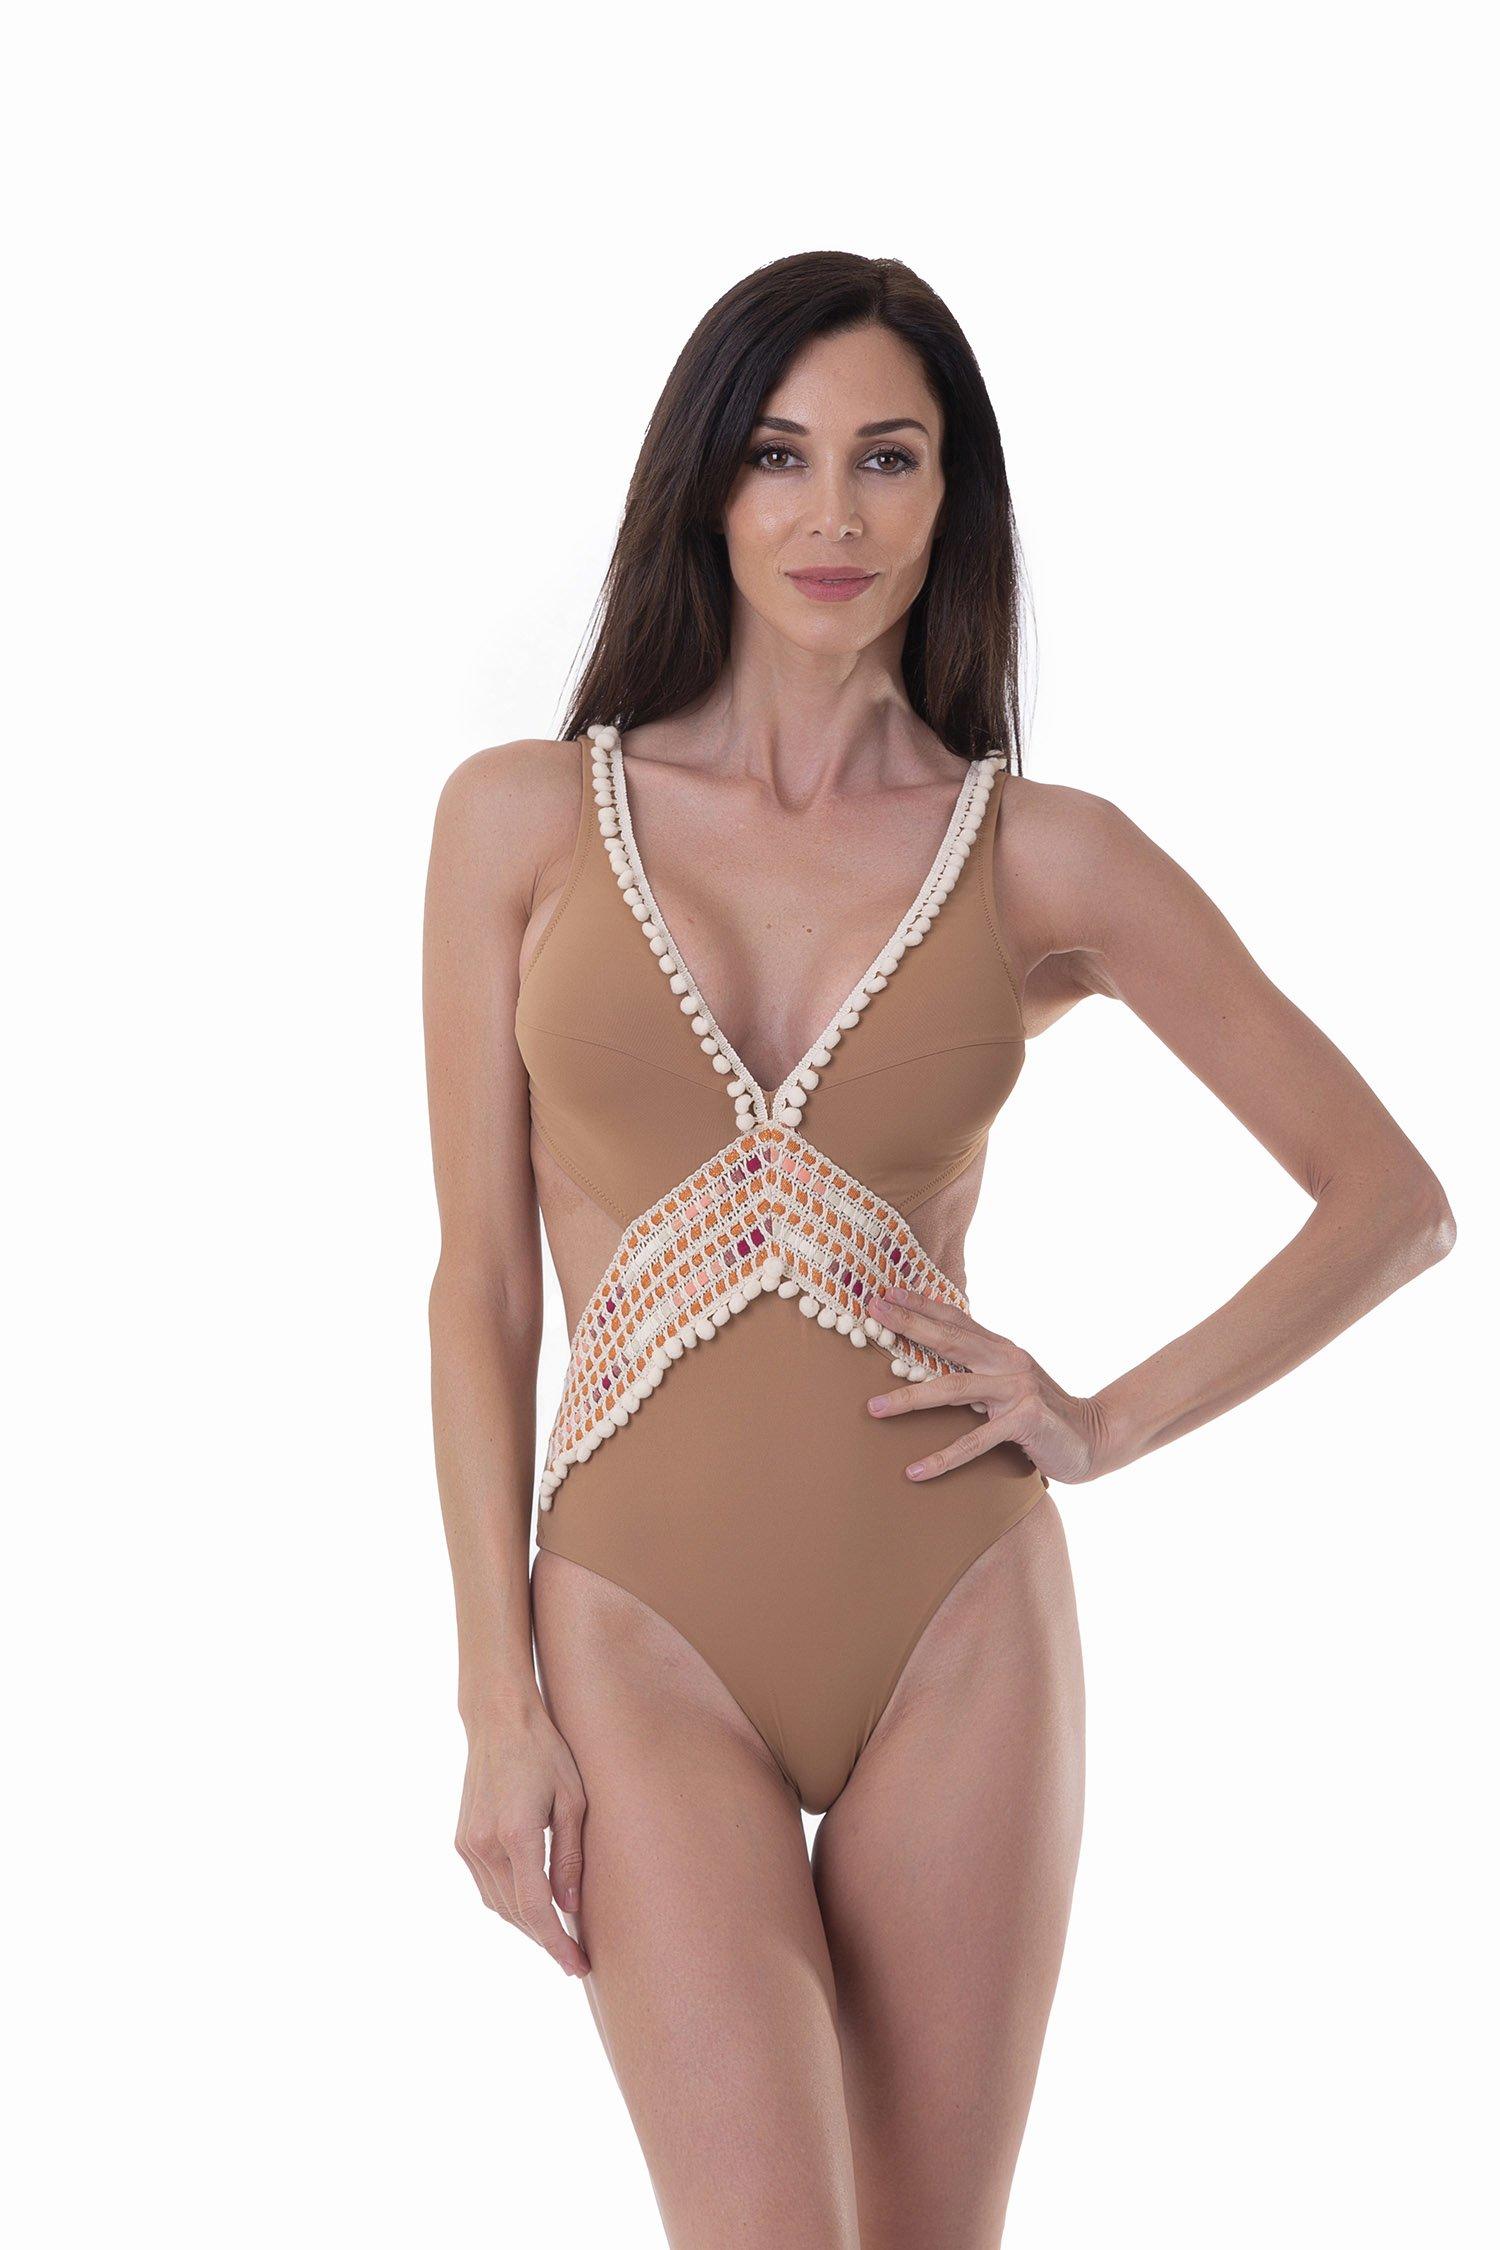 LUXE PLAIN COLOUR ONE-PIECE MONOKINI SILHOUETTE WITH TRIMMING - Rame